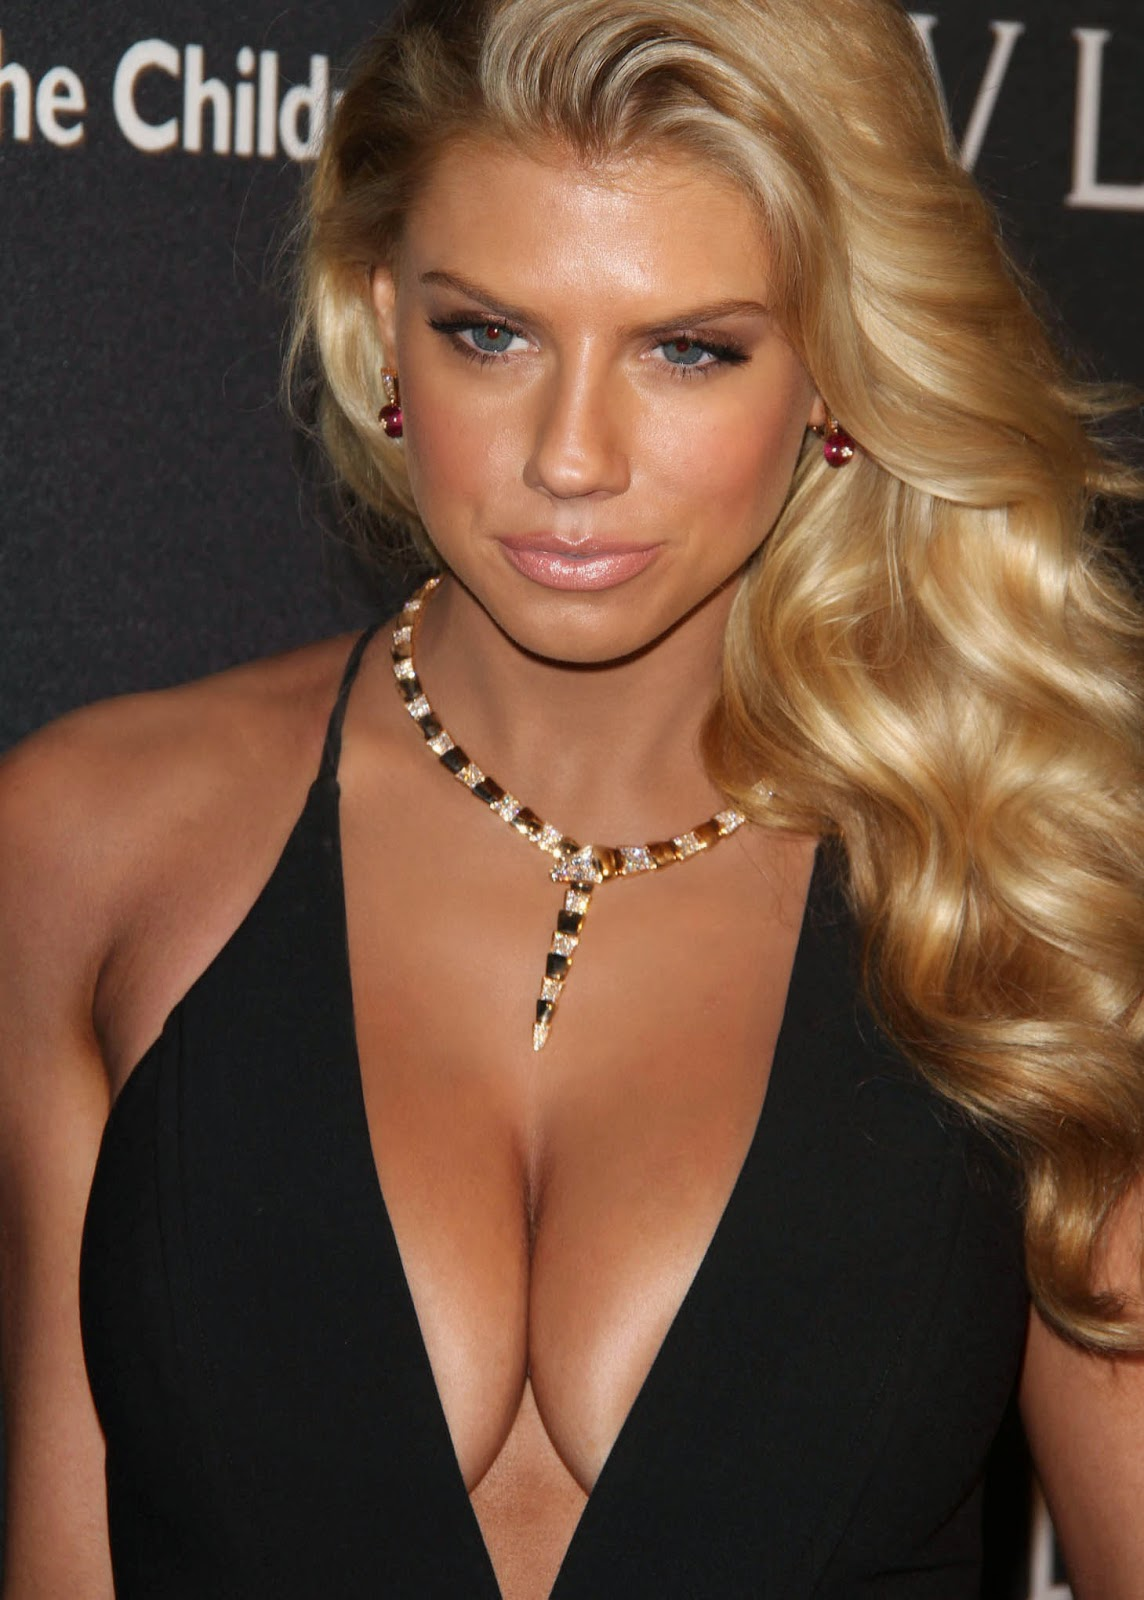 Charlotte McKinney Is No Kate Upton